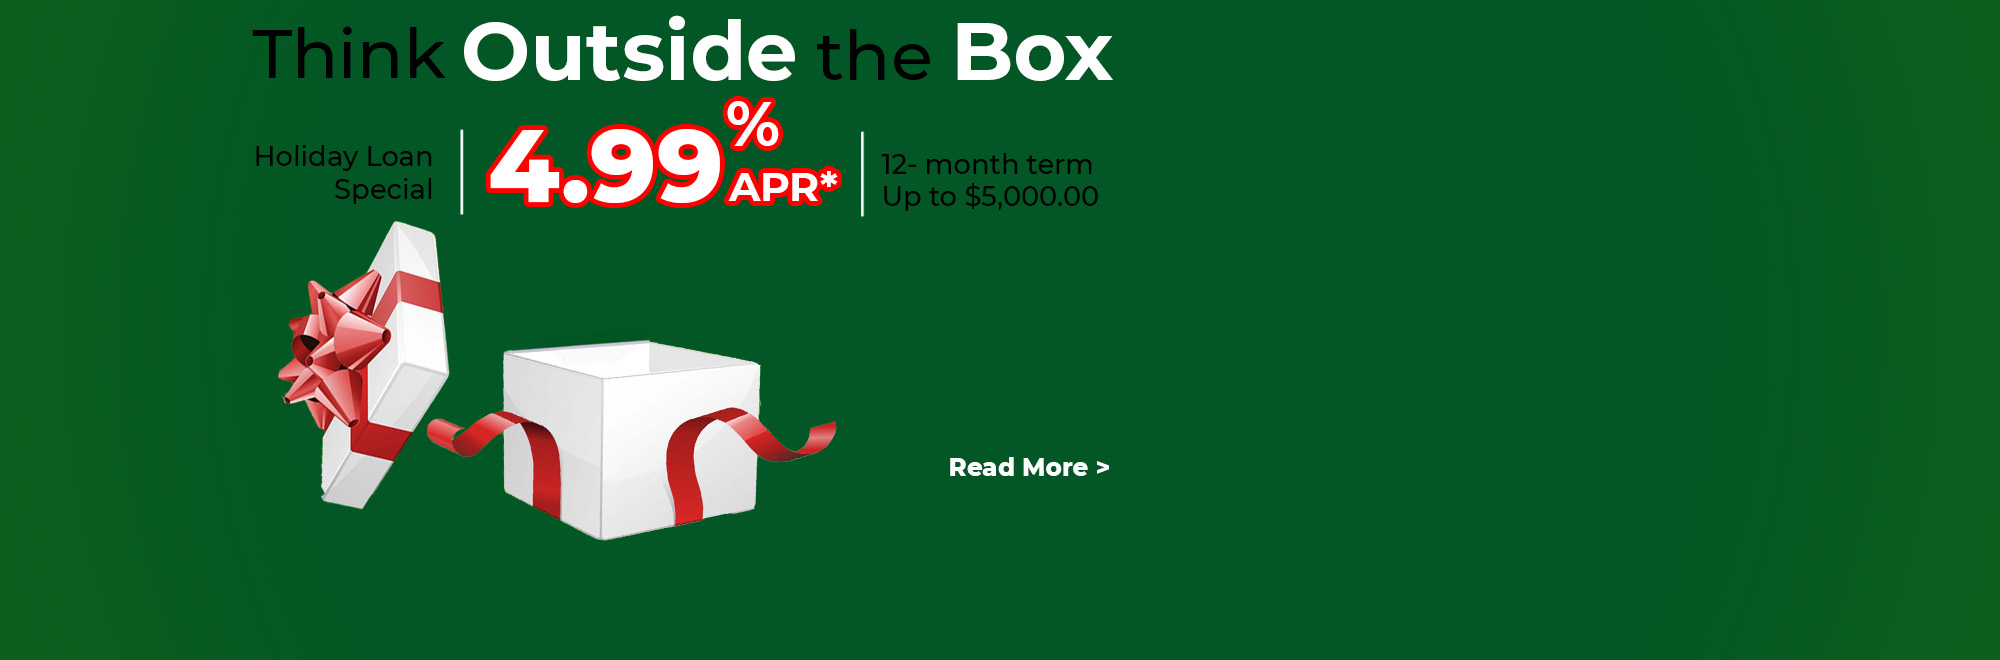 Think Outside The Box Holiday Loan